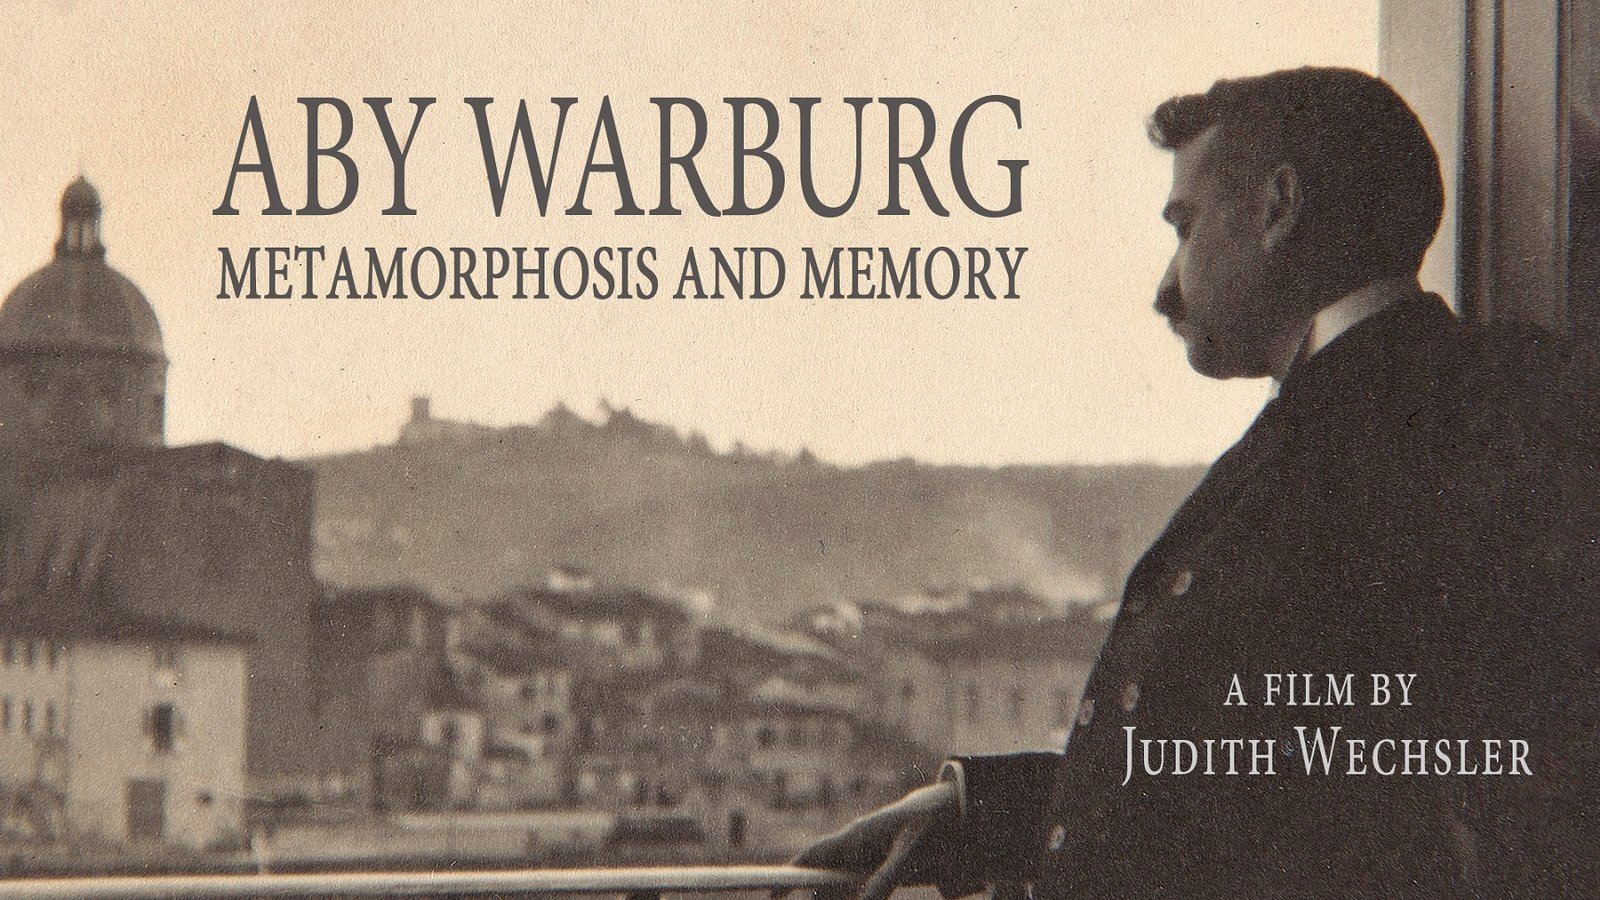 Aby Warburg: Metamorphosis and Memory - An Influential Art Historian